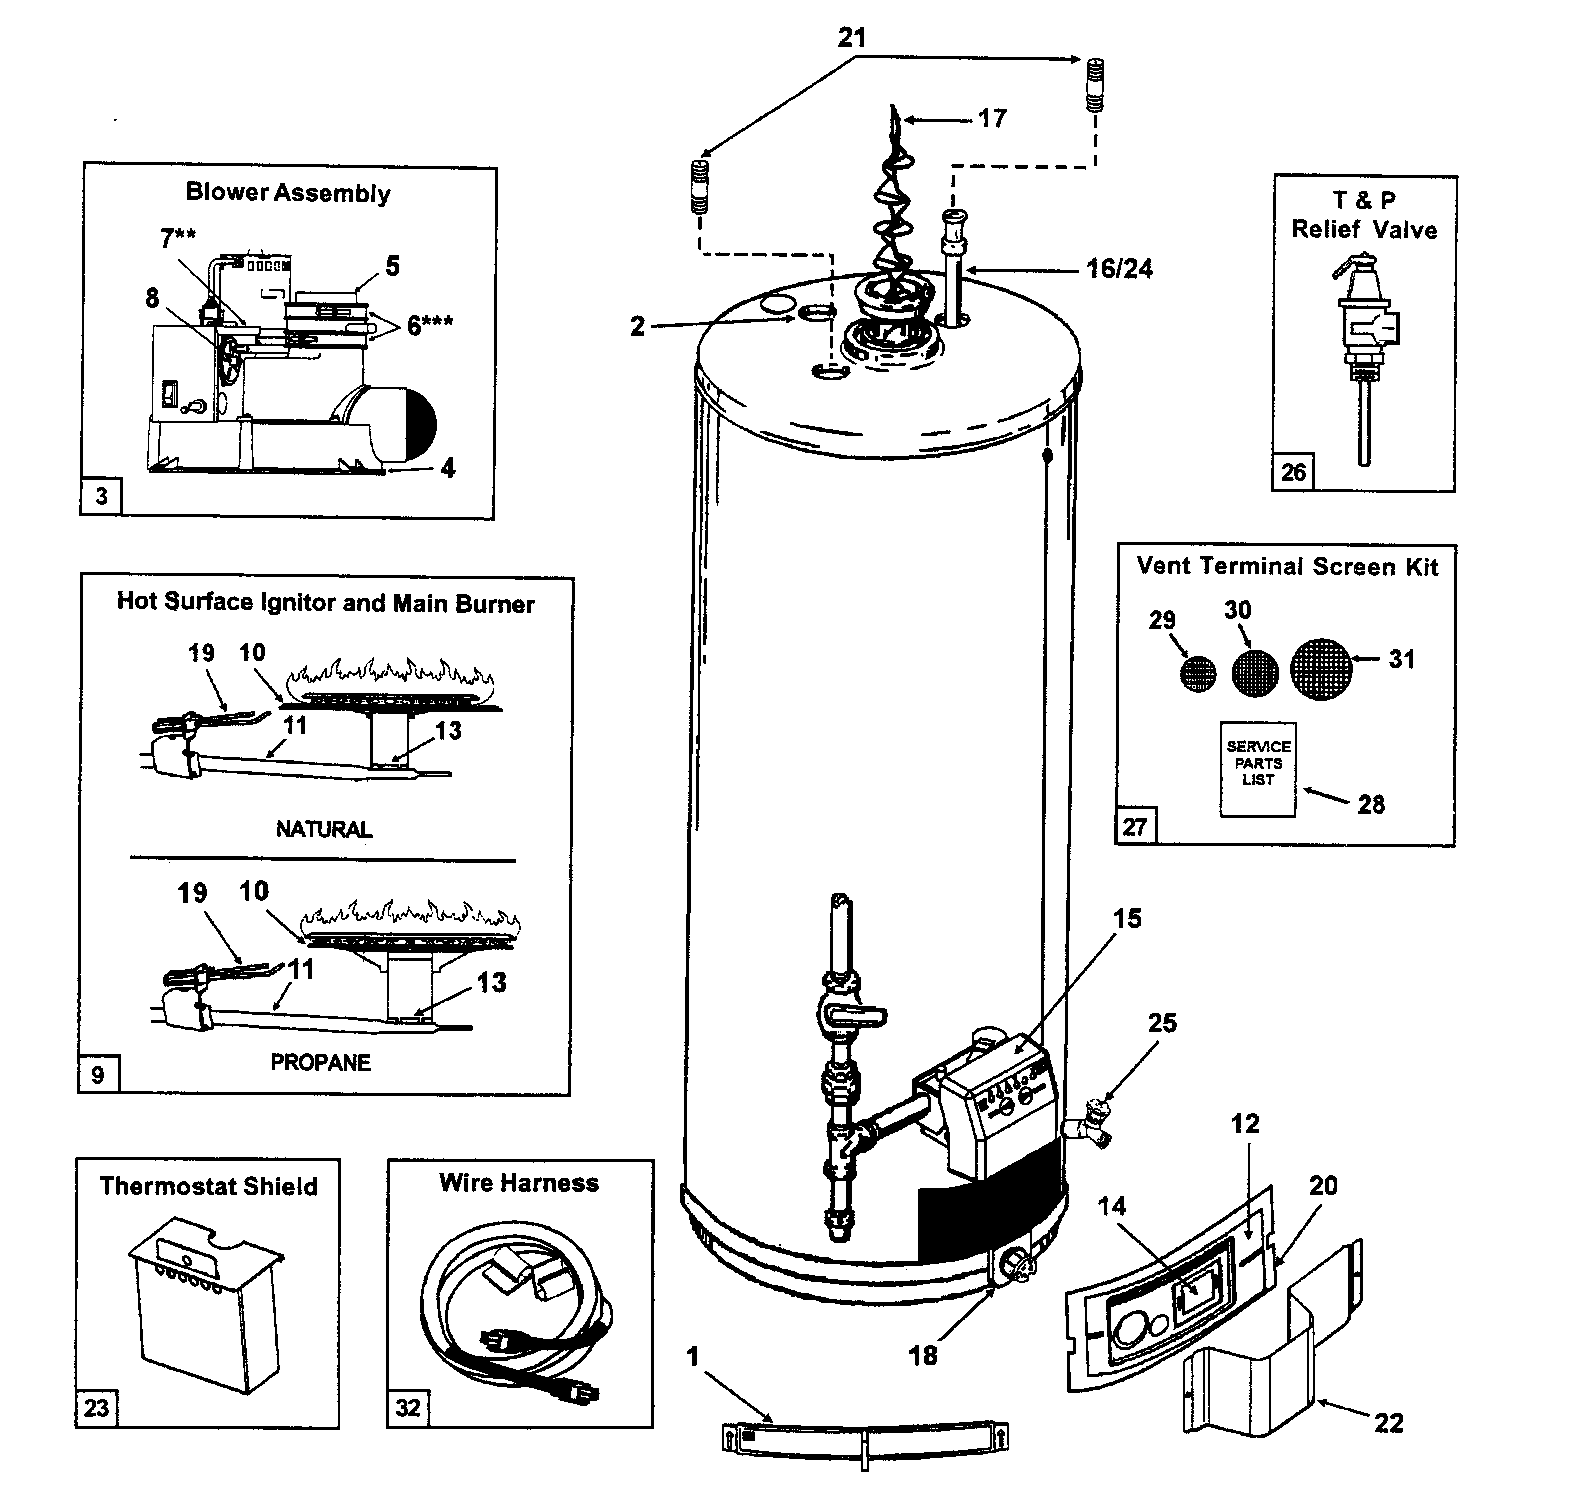 WATER HEATER Diagram & Parts List for Model gs650yrvit5